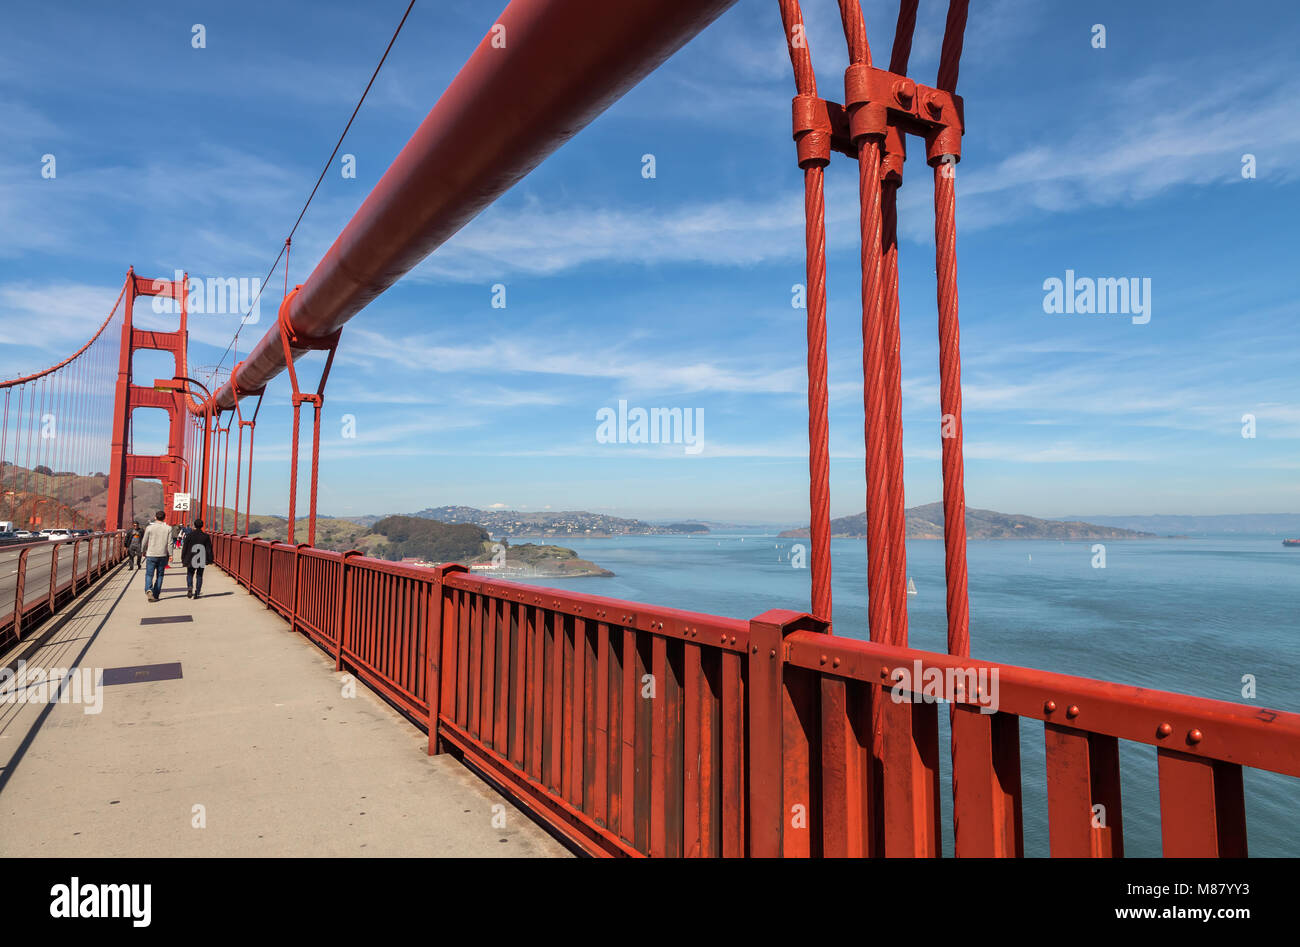 Golden Gate Bridge and the pedestrians, overlooking the San Francisco Bay, California, United States. - Stock Image